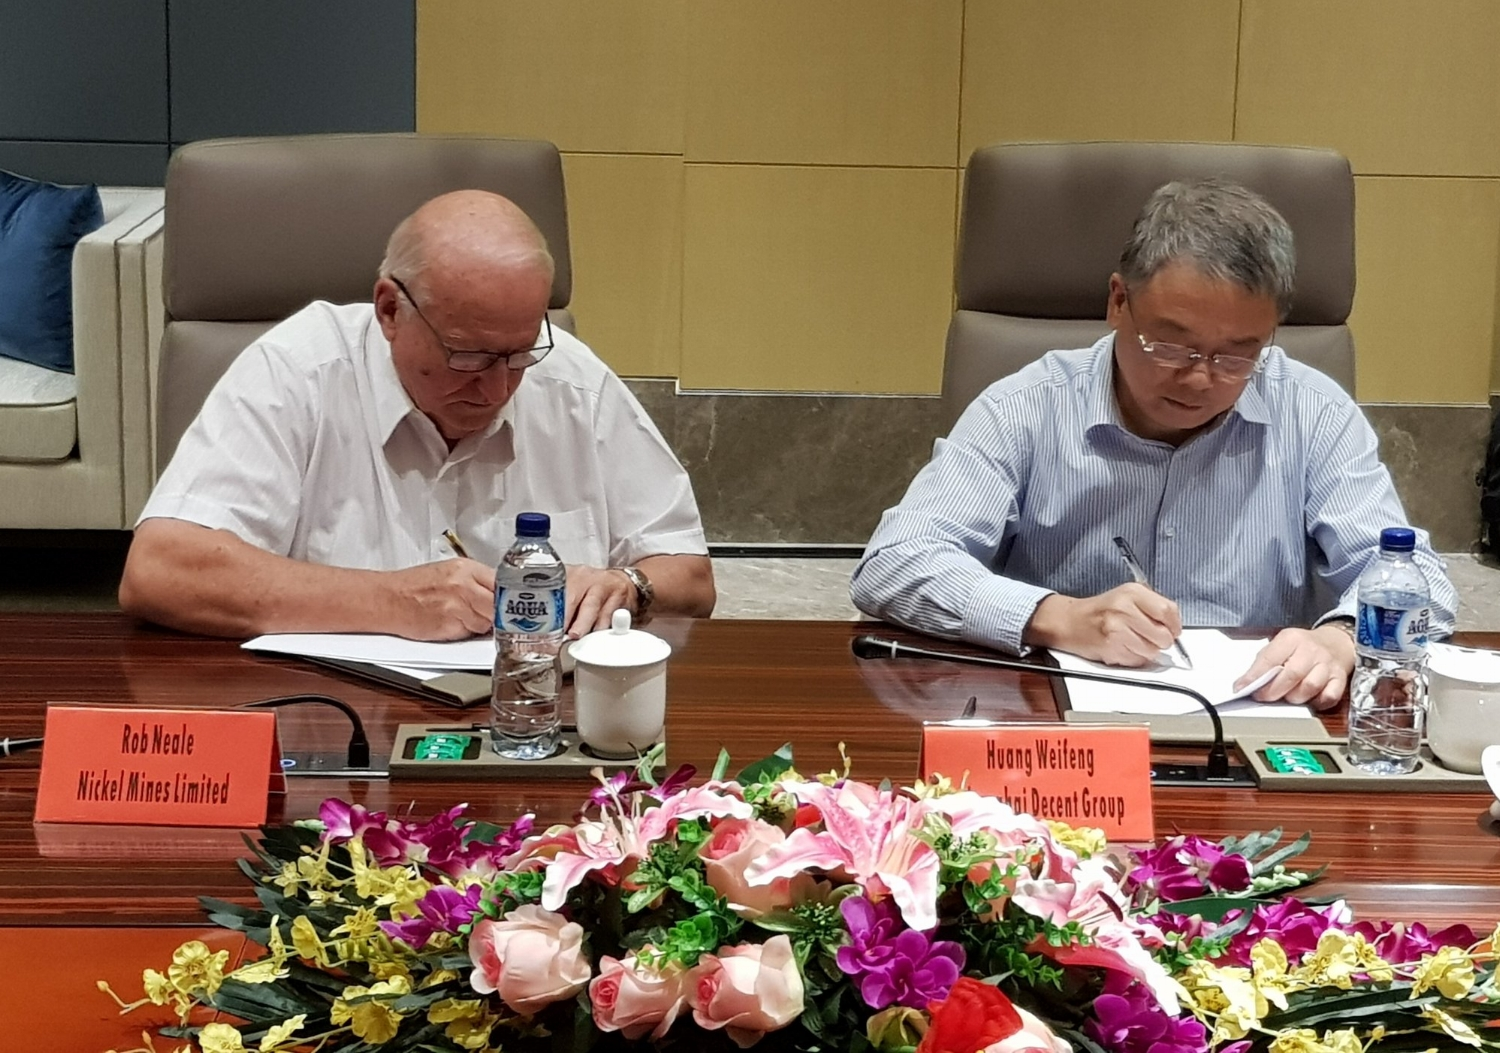 Nickel Mines Chairman Mr Robert Neale and Mr Weifeng Huang, Chairman of Shanghai Decent, Director of PT IMIP and Nickel Mines Non-Executive Director, signing the MOU re the potential acquisition of two new RKEF lines. A binding Collaboration Agreement was executed in November 2018.